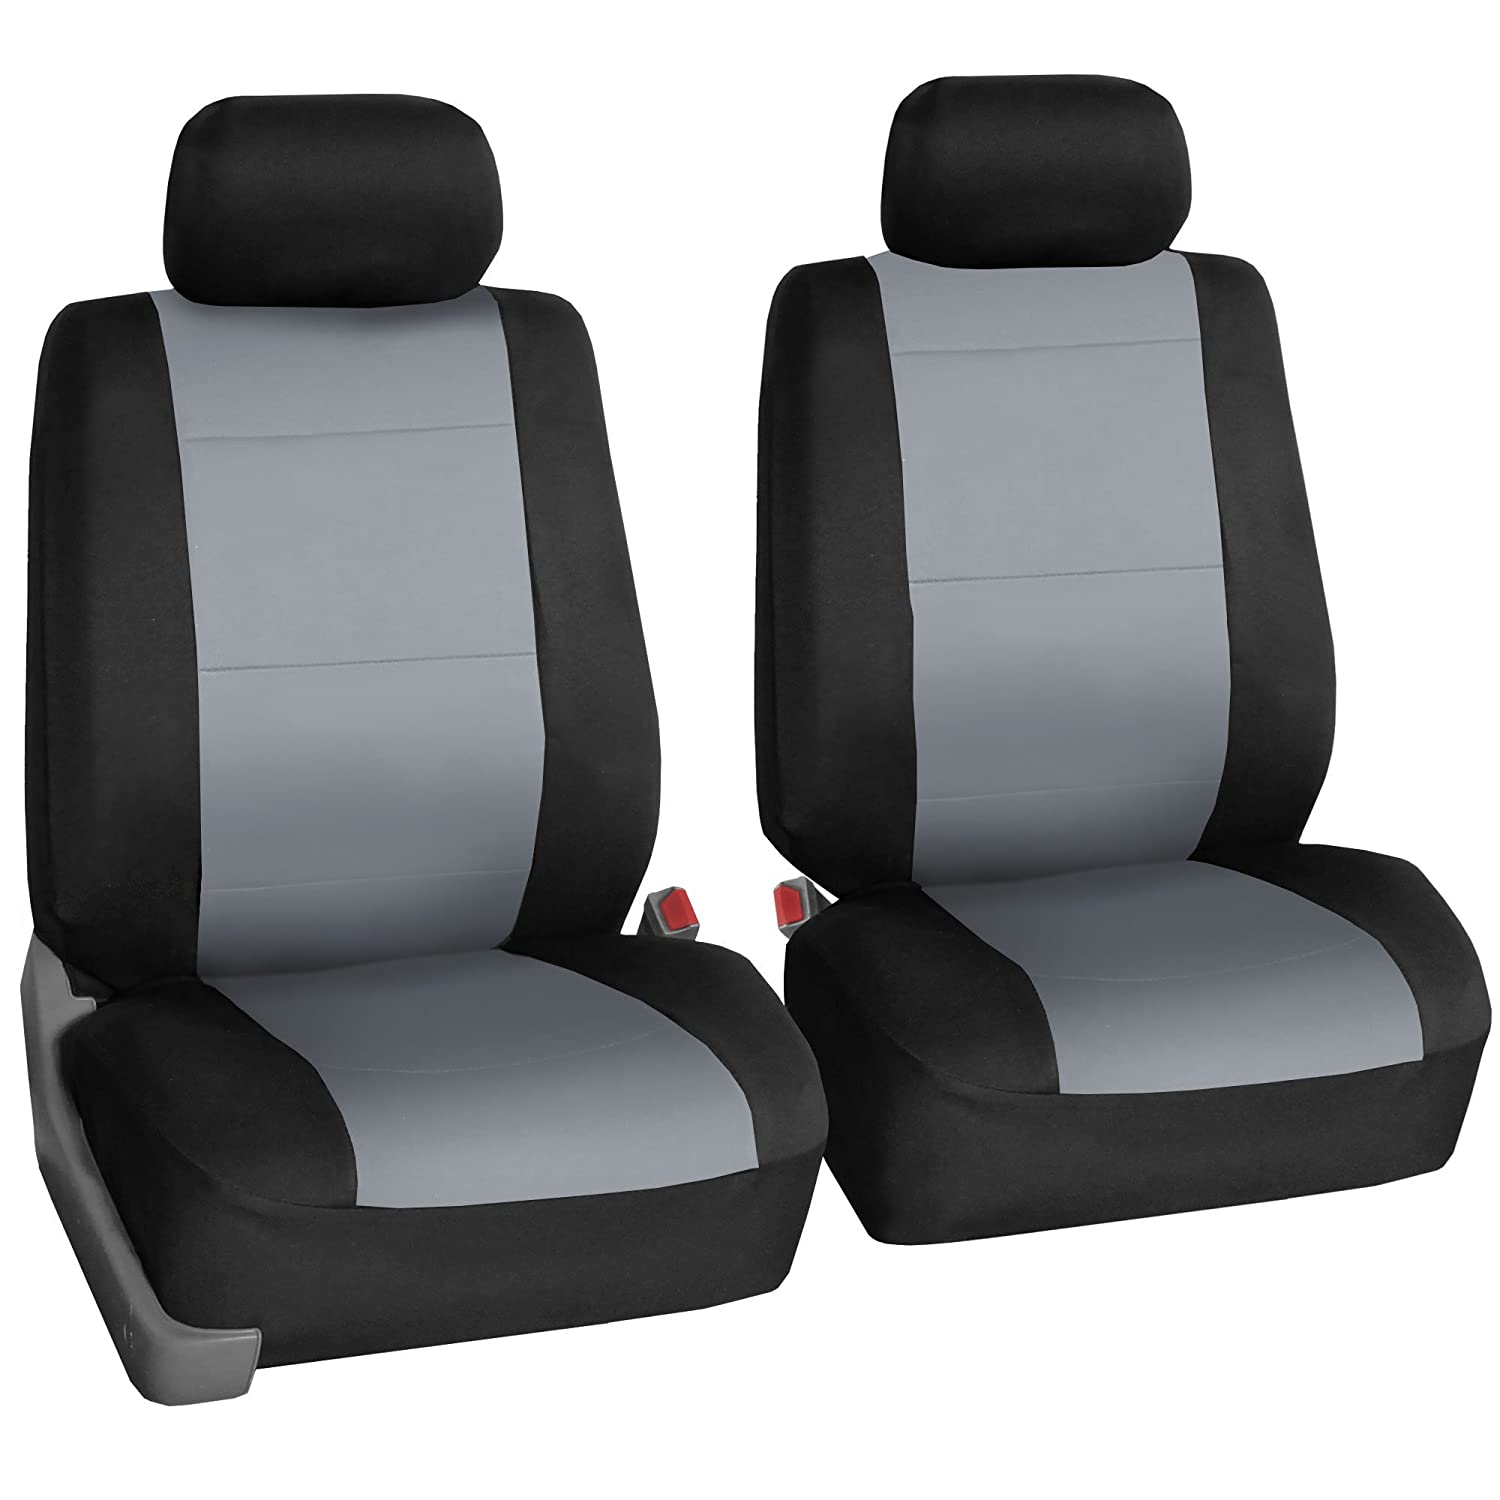 Amazon.com: FH GROUP FH-FB083102 Neoprene Waterproof Car Seat Covers